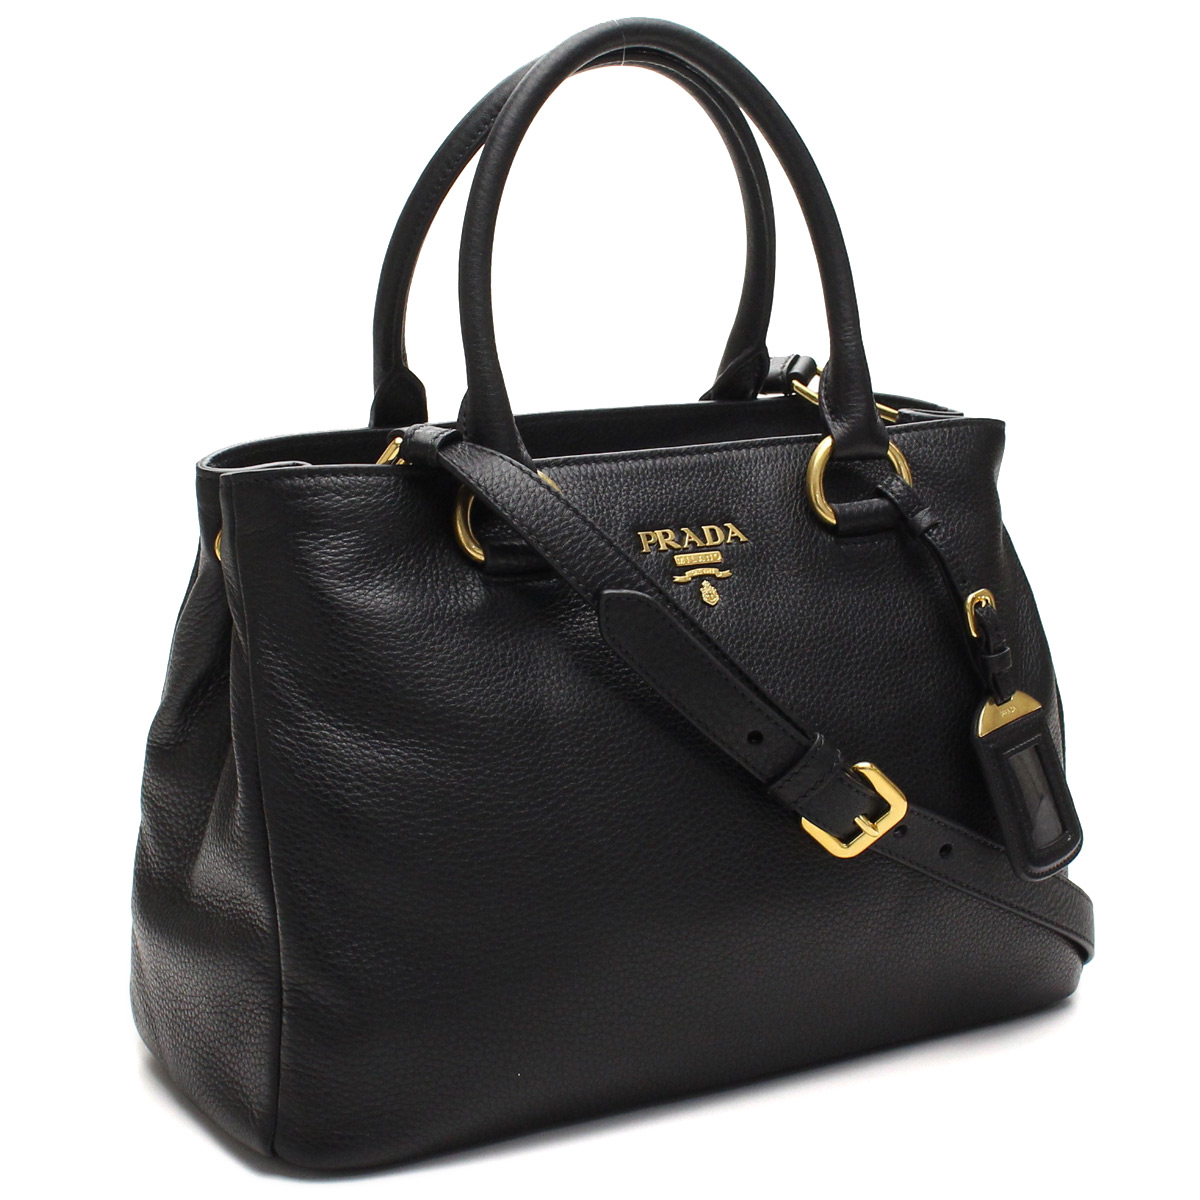 b4082ec02ab8 Bighit The total brand wholesale: Prada outlet PRADA (OUTLET) tote bag  1BA878-O-UWL-F0002 NERO black( taxfree/send by EMS/authentic/A brand new  item ) ...